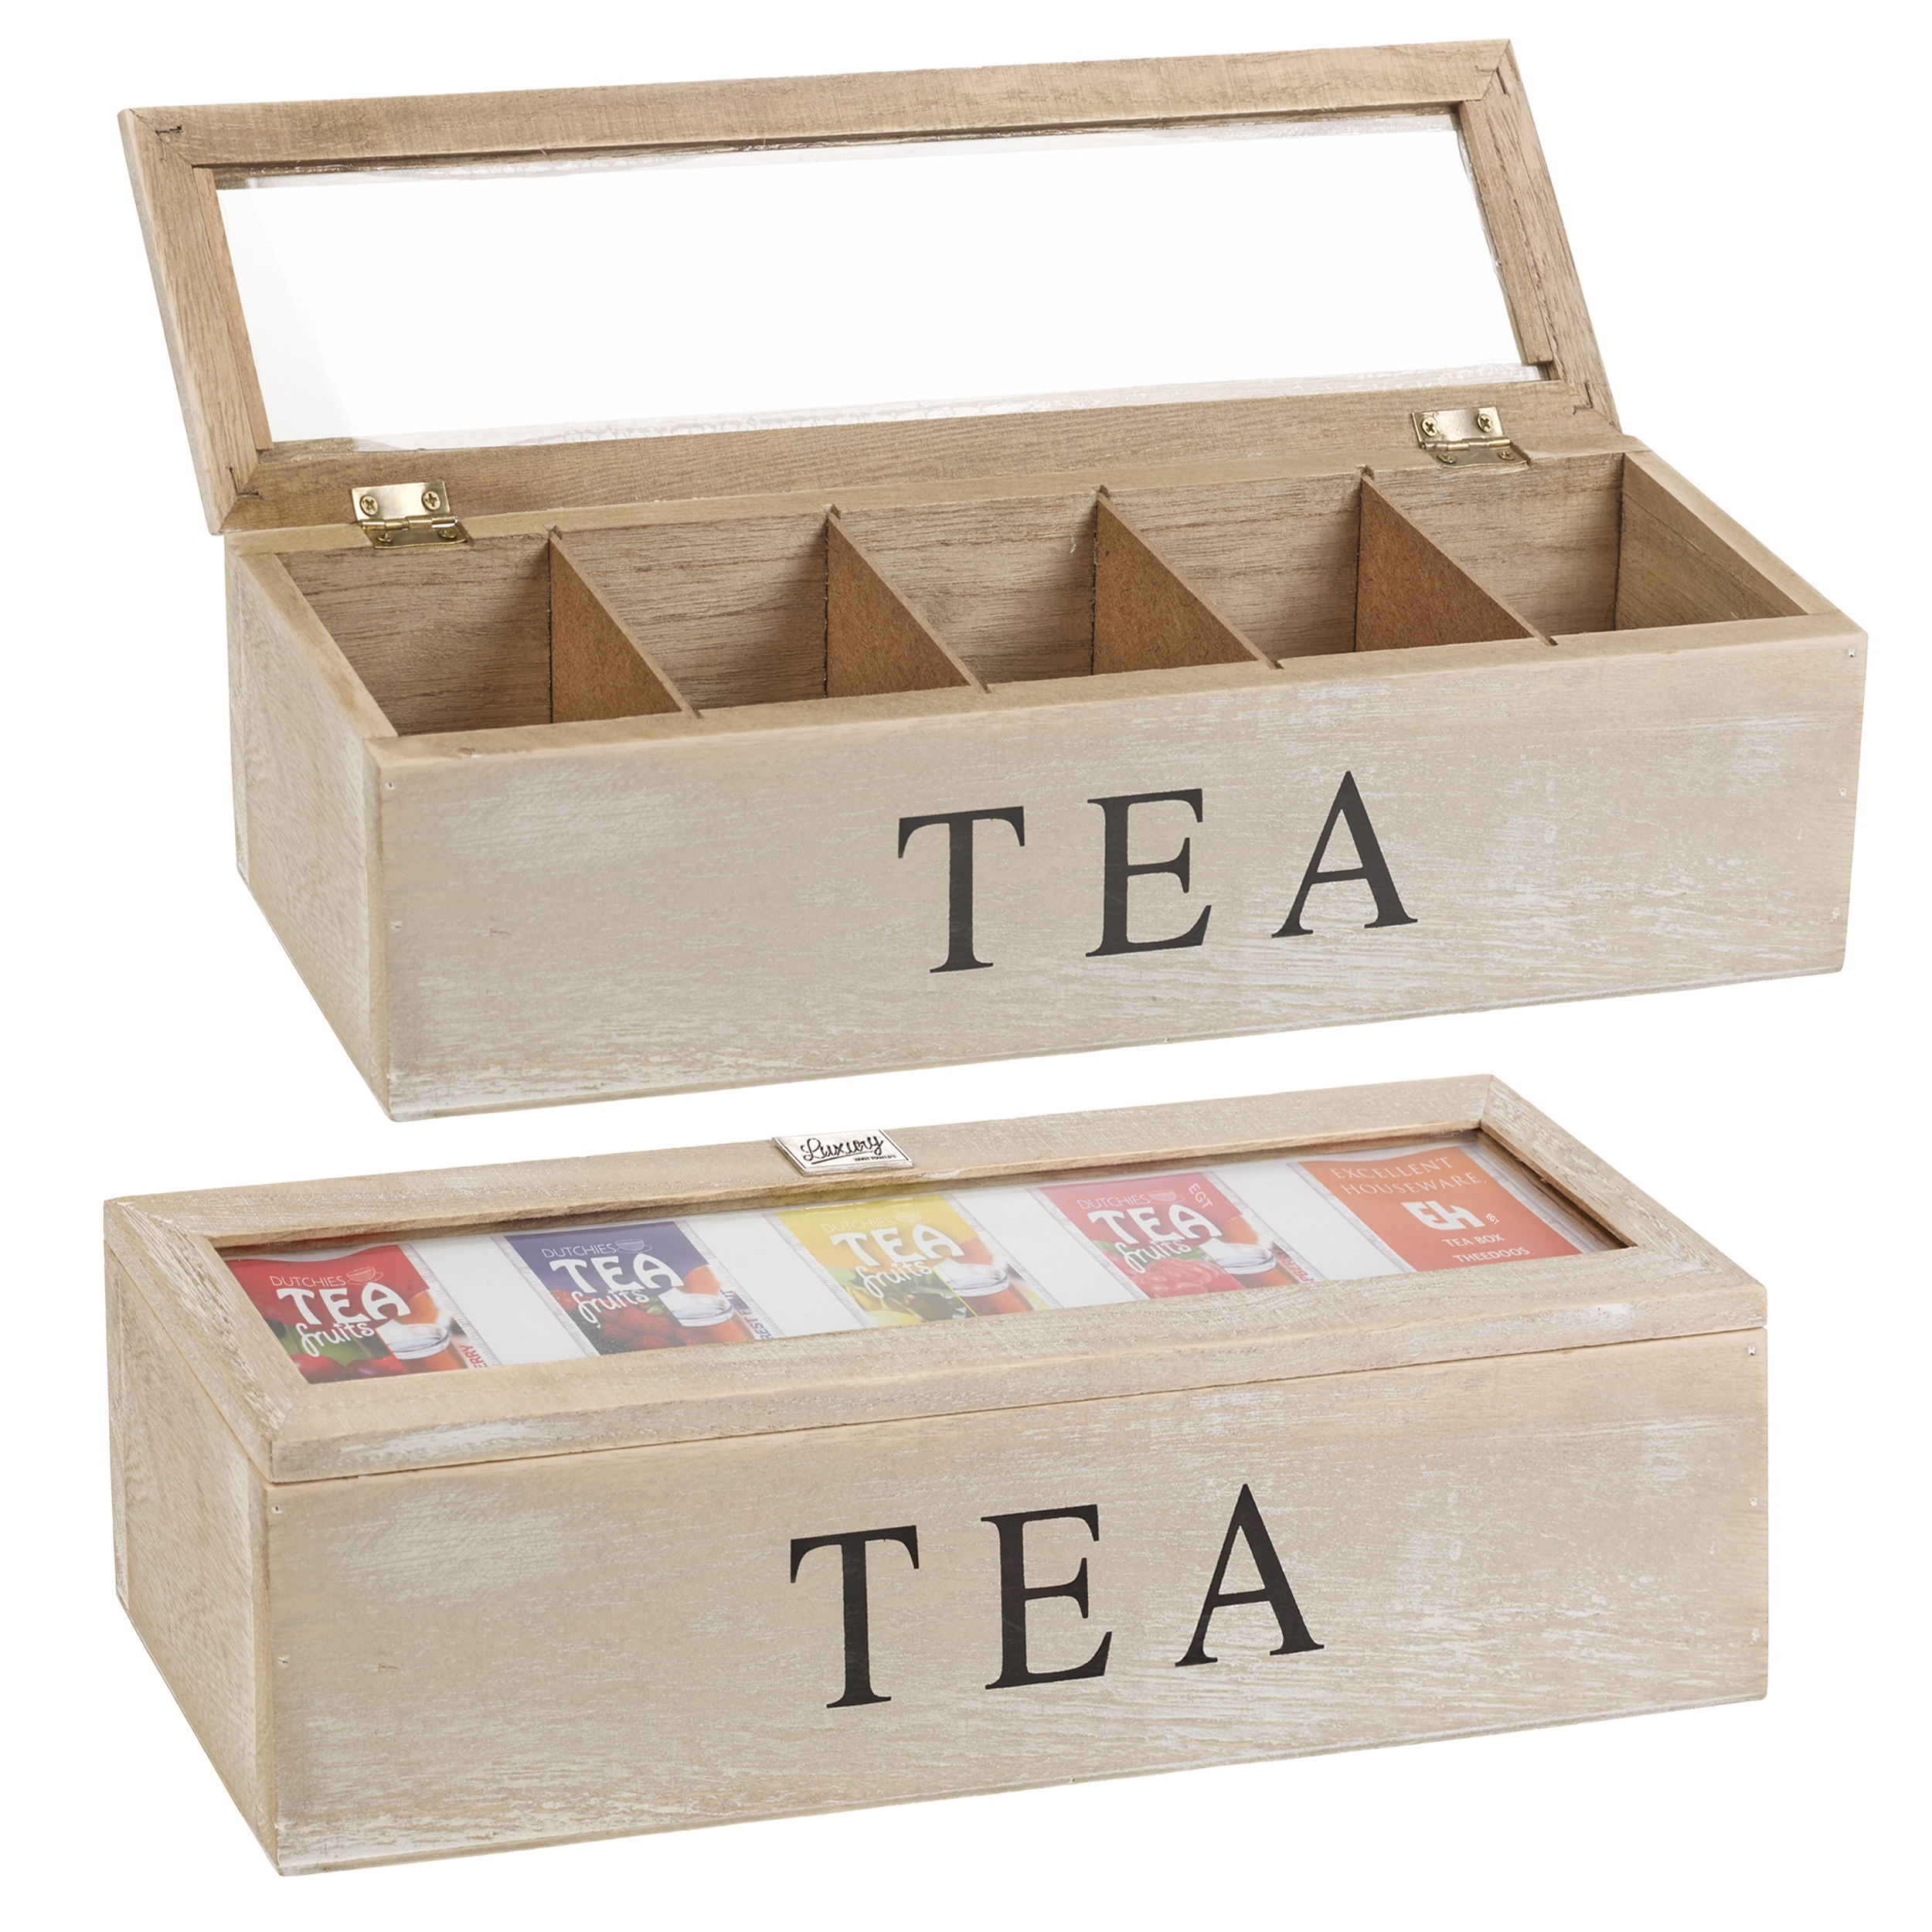 Easygift  sc 1 st  eBay & Distressed Wooden Tea Box 5 Sections Compartments Container Bag ... Aboutintivar.Com